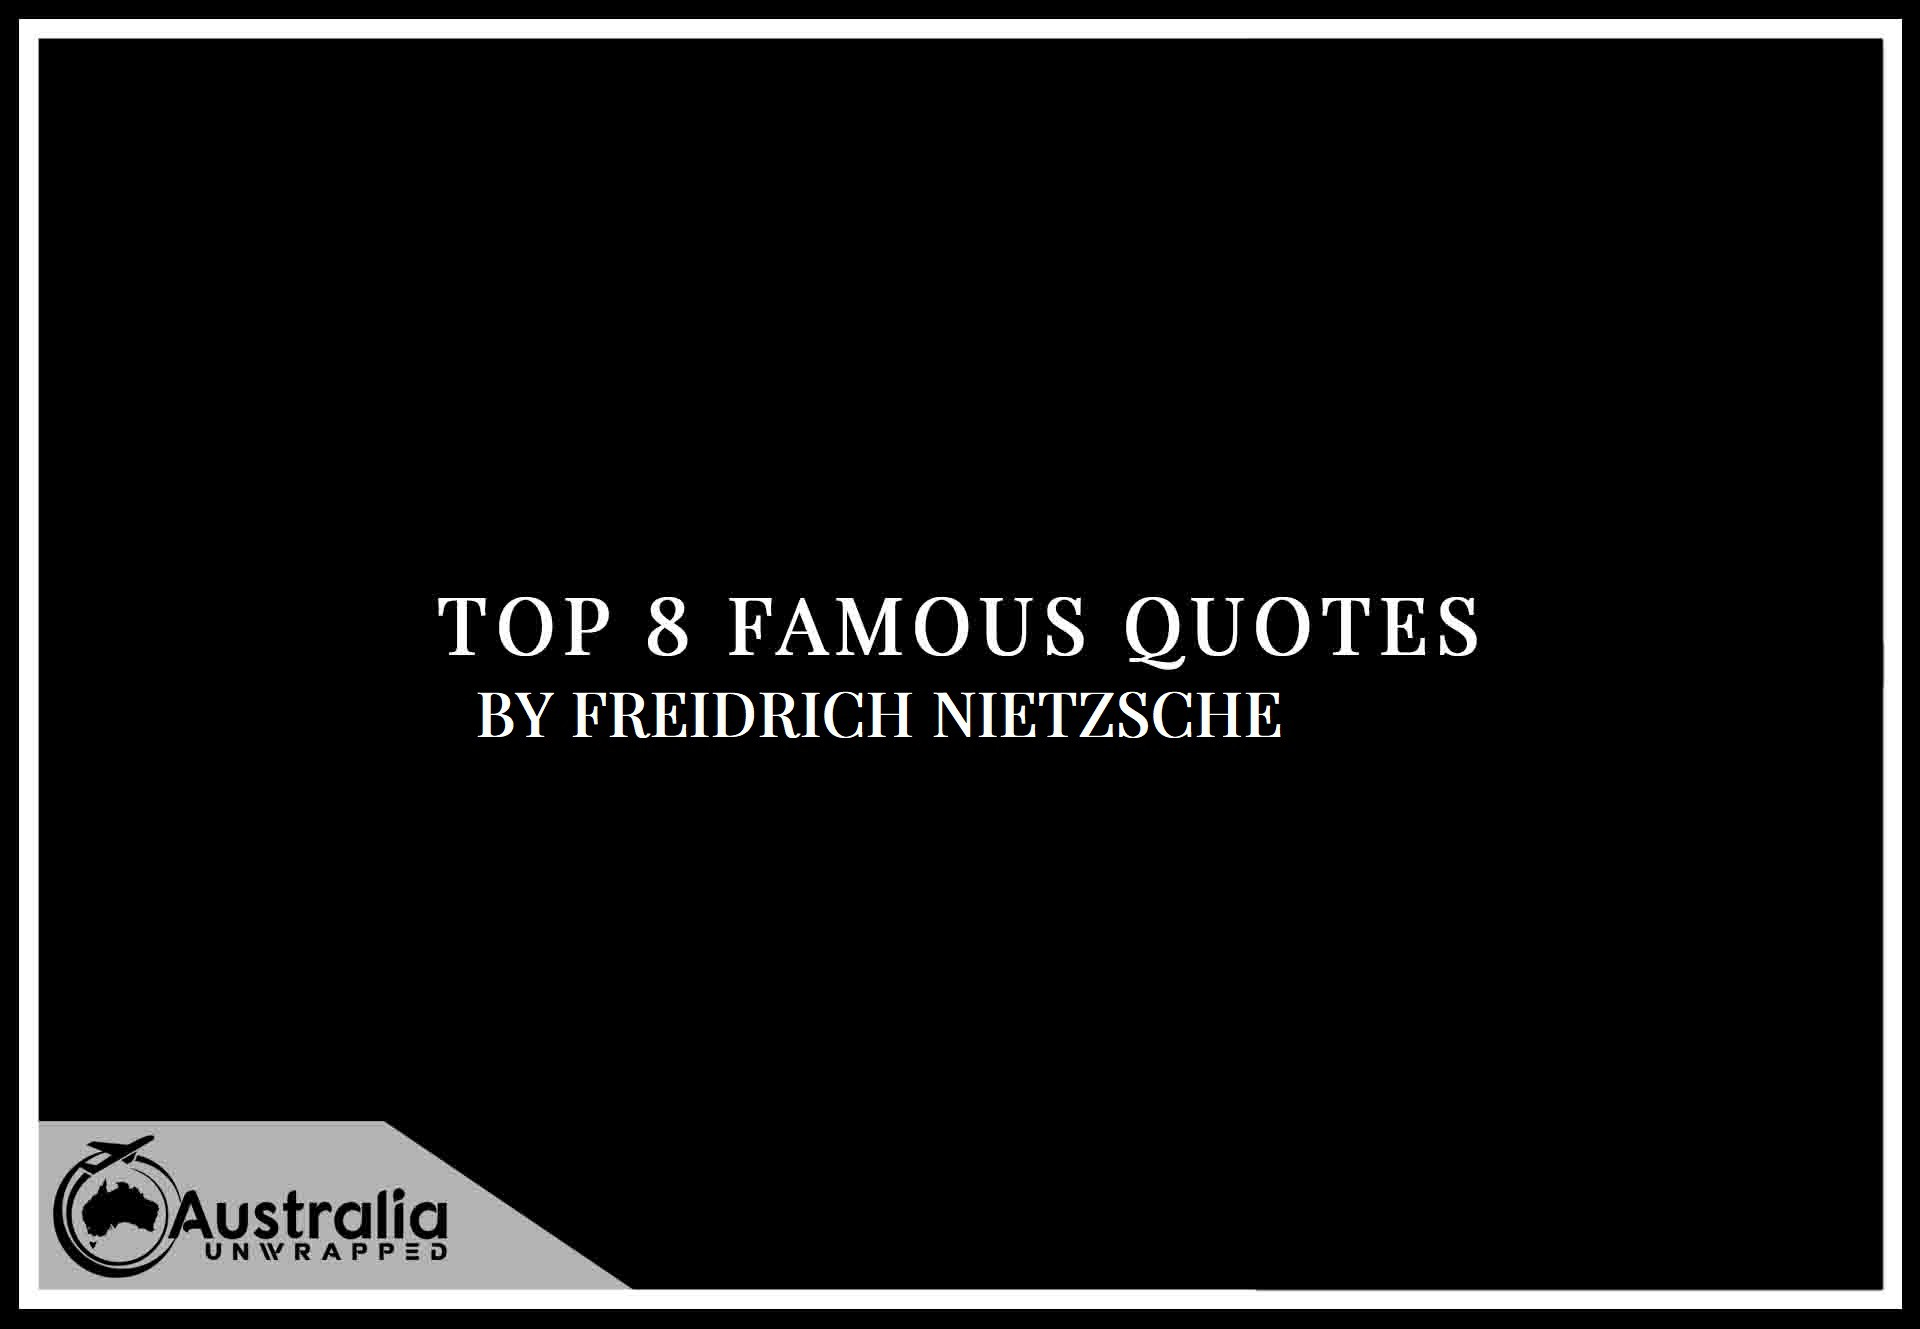 Top 8 Famous Quotes by Author Freidrich Nietzsche